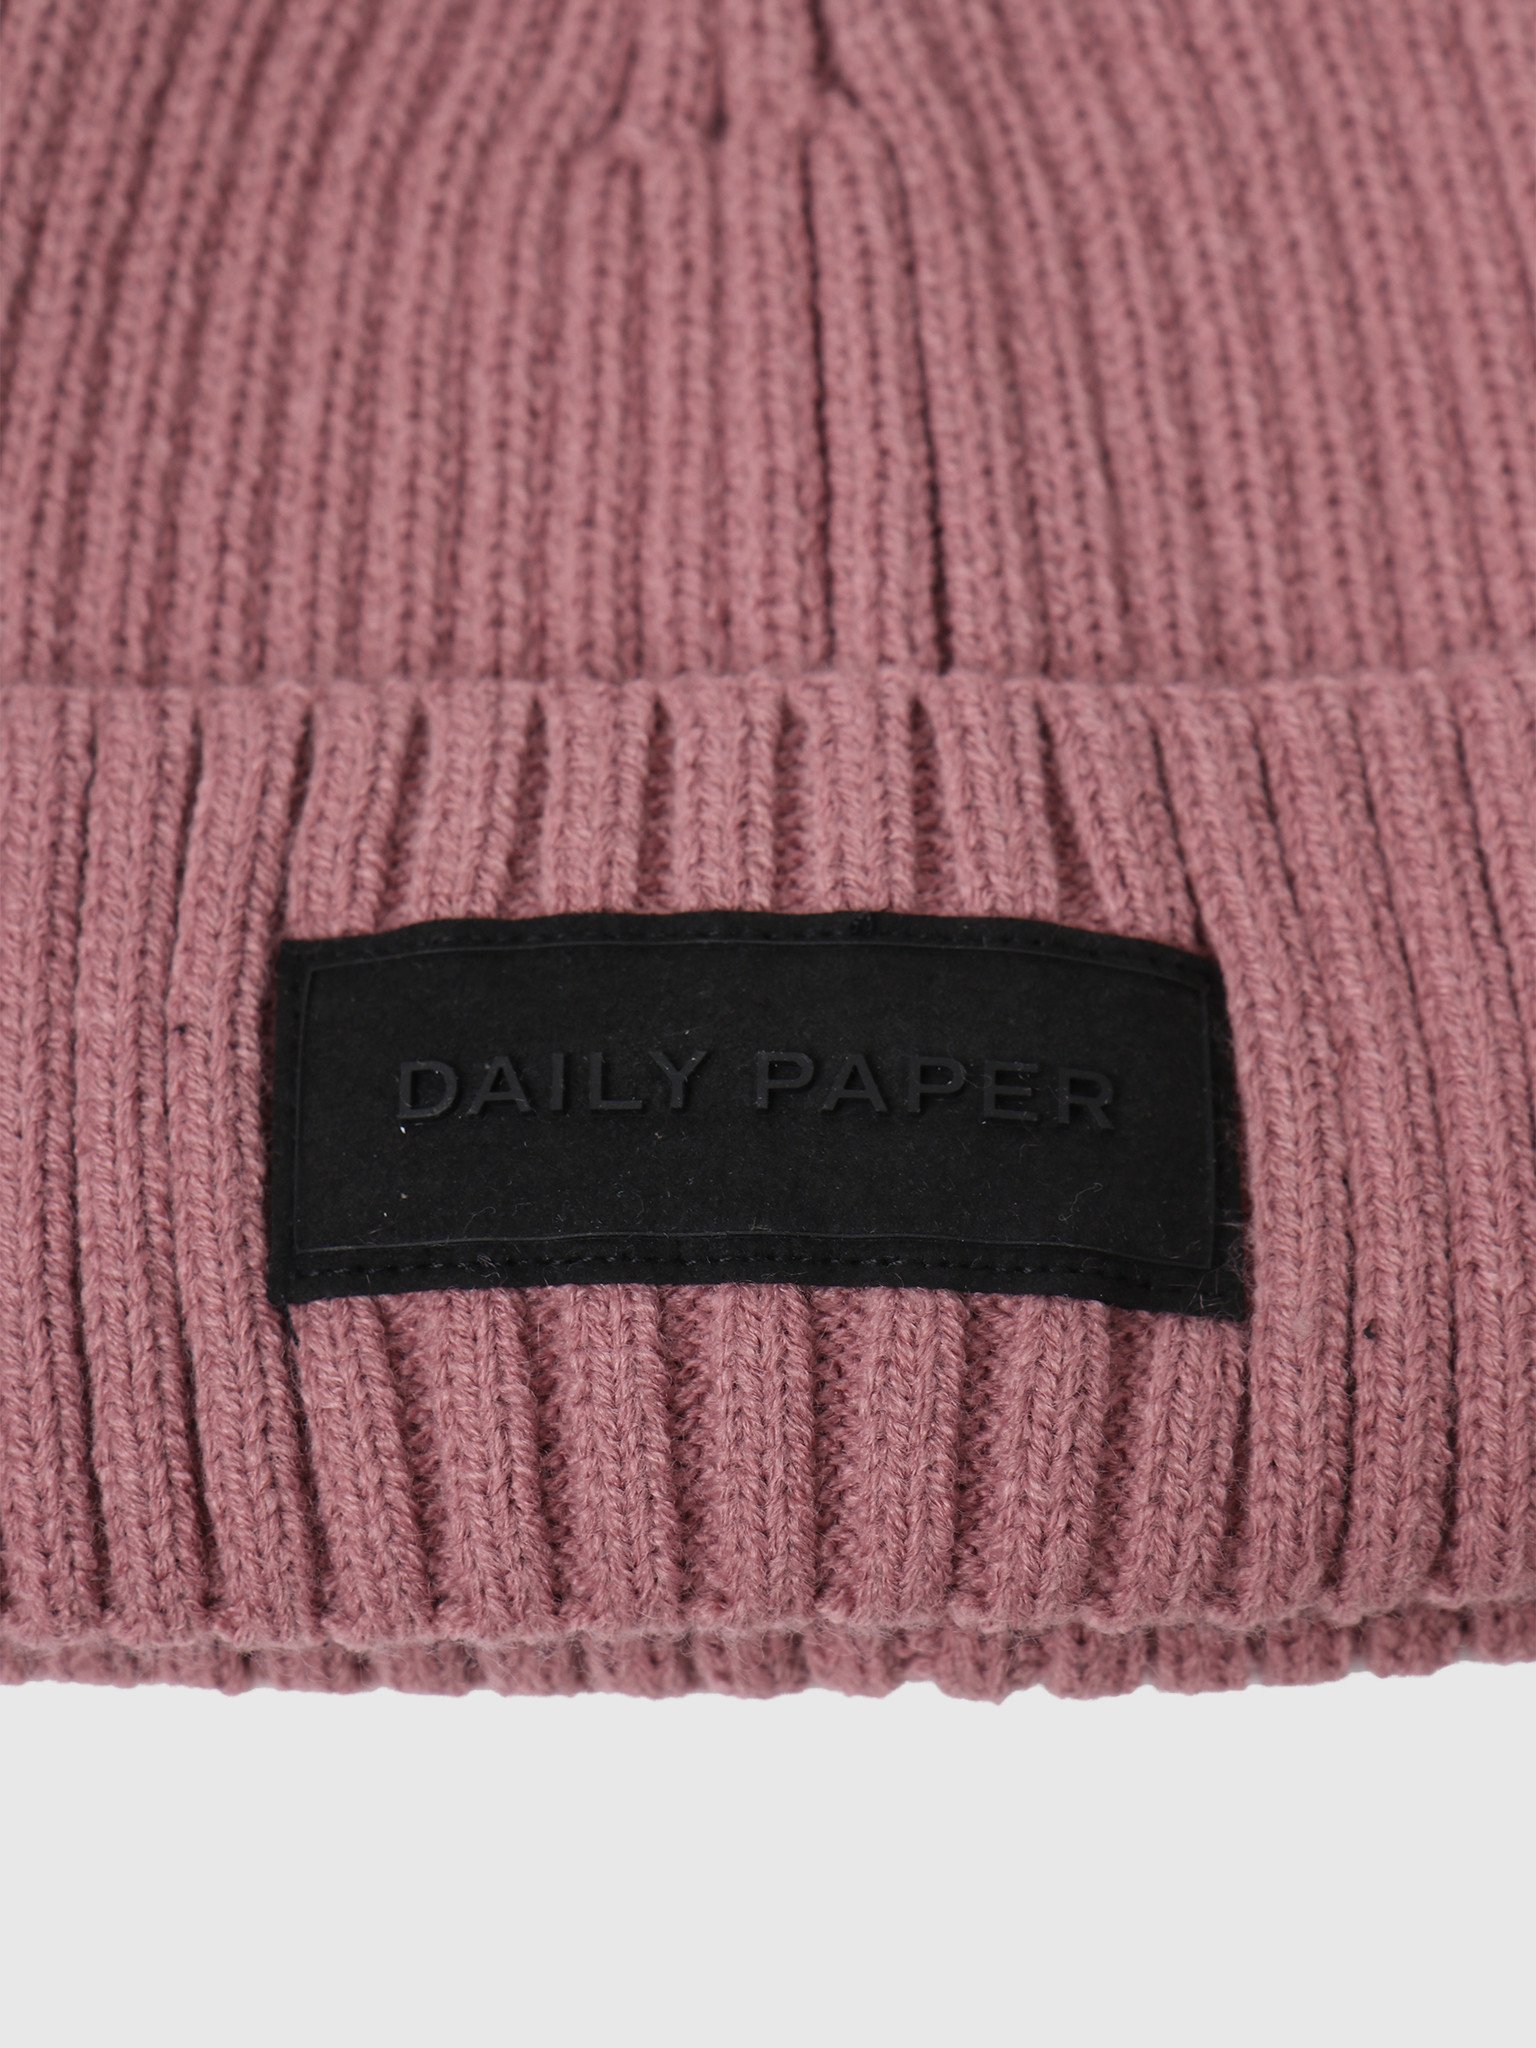 Daily Paper Daily Paper Ebeanie Mauve Pink 2021136